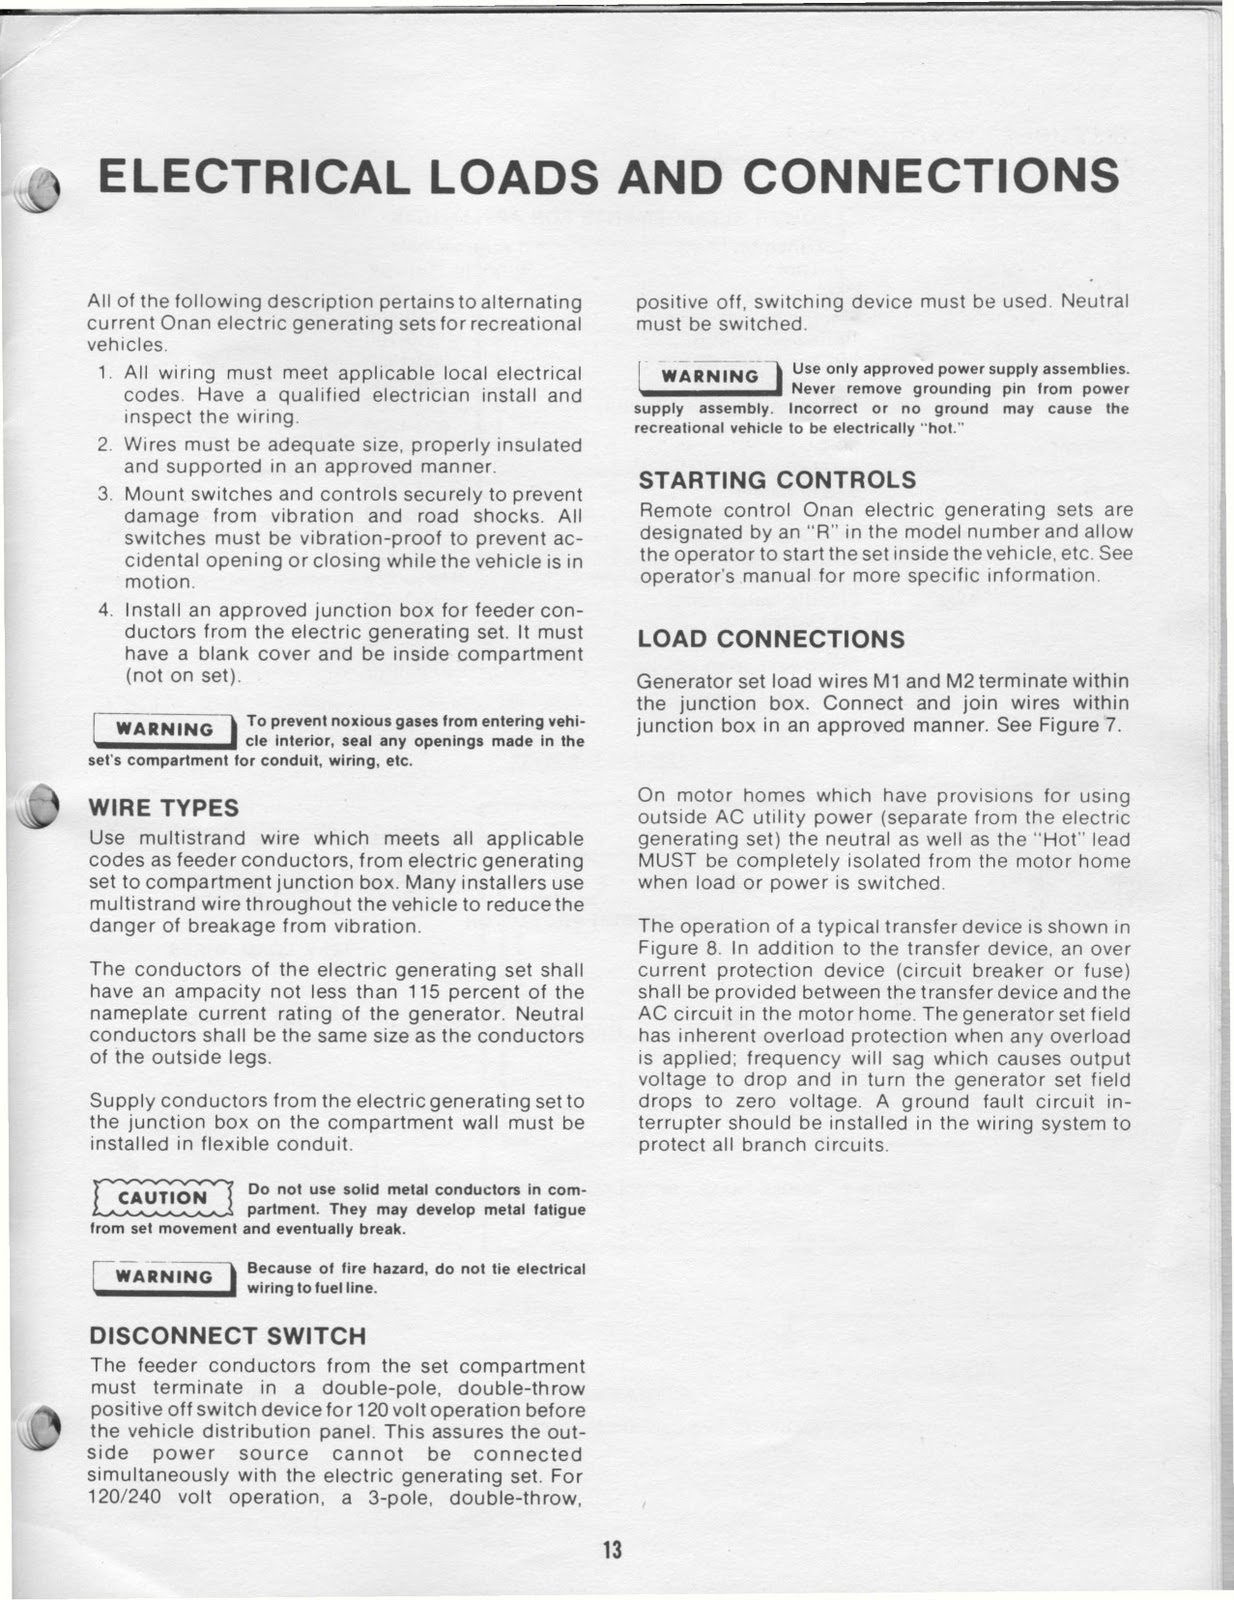 1983 Fleetwood Pace Arrow Owners Manuals Onan 40 Kw Bfa Genset Need To Know Wire The Id Of 4 Wires For Remote Start On Posted By Vintage Travel Trailers At 1020 Am